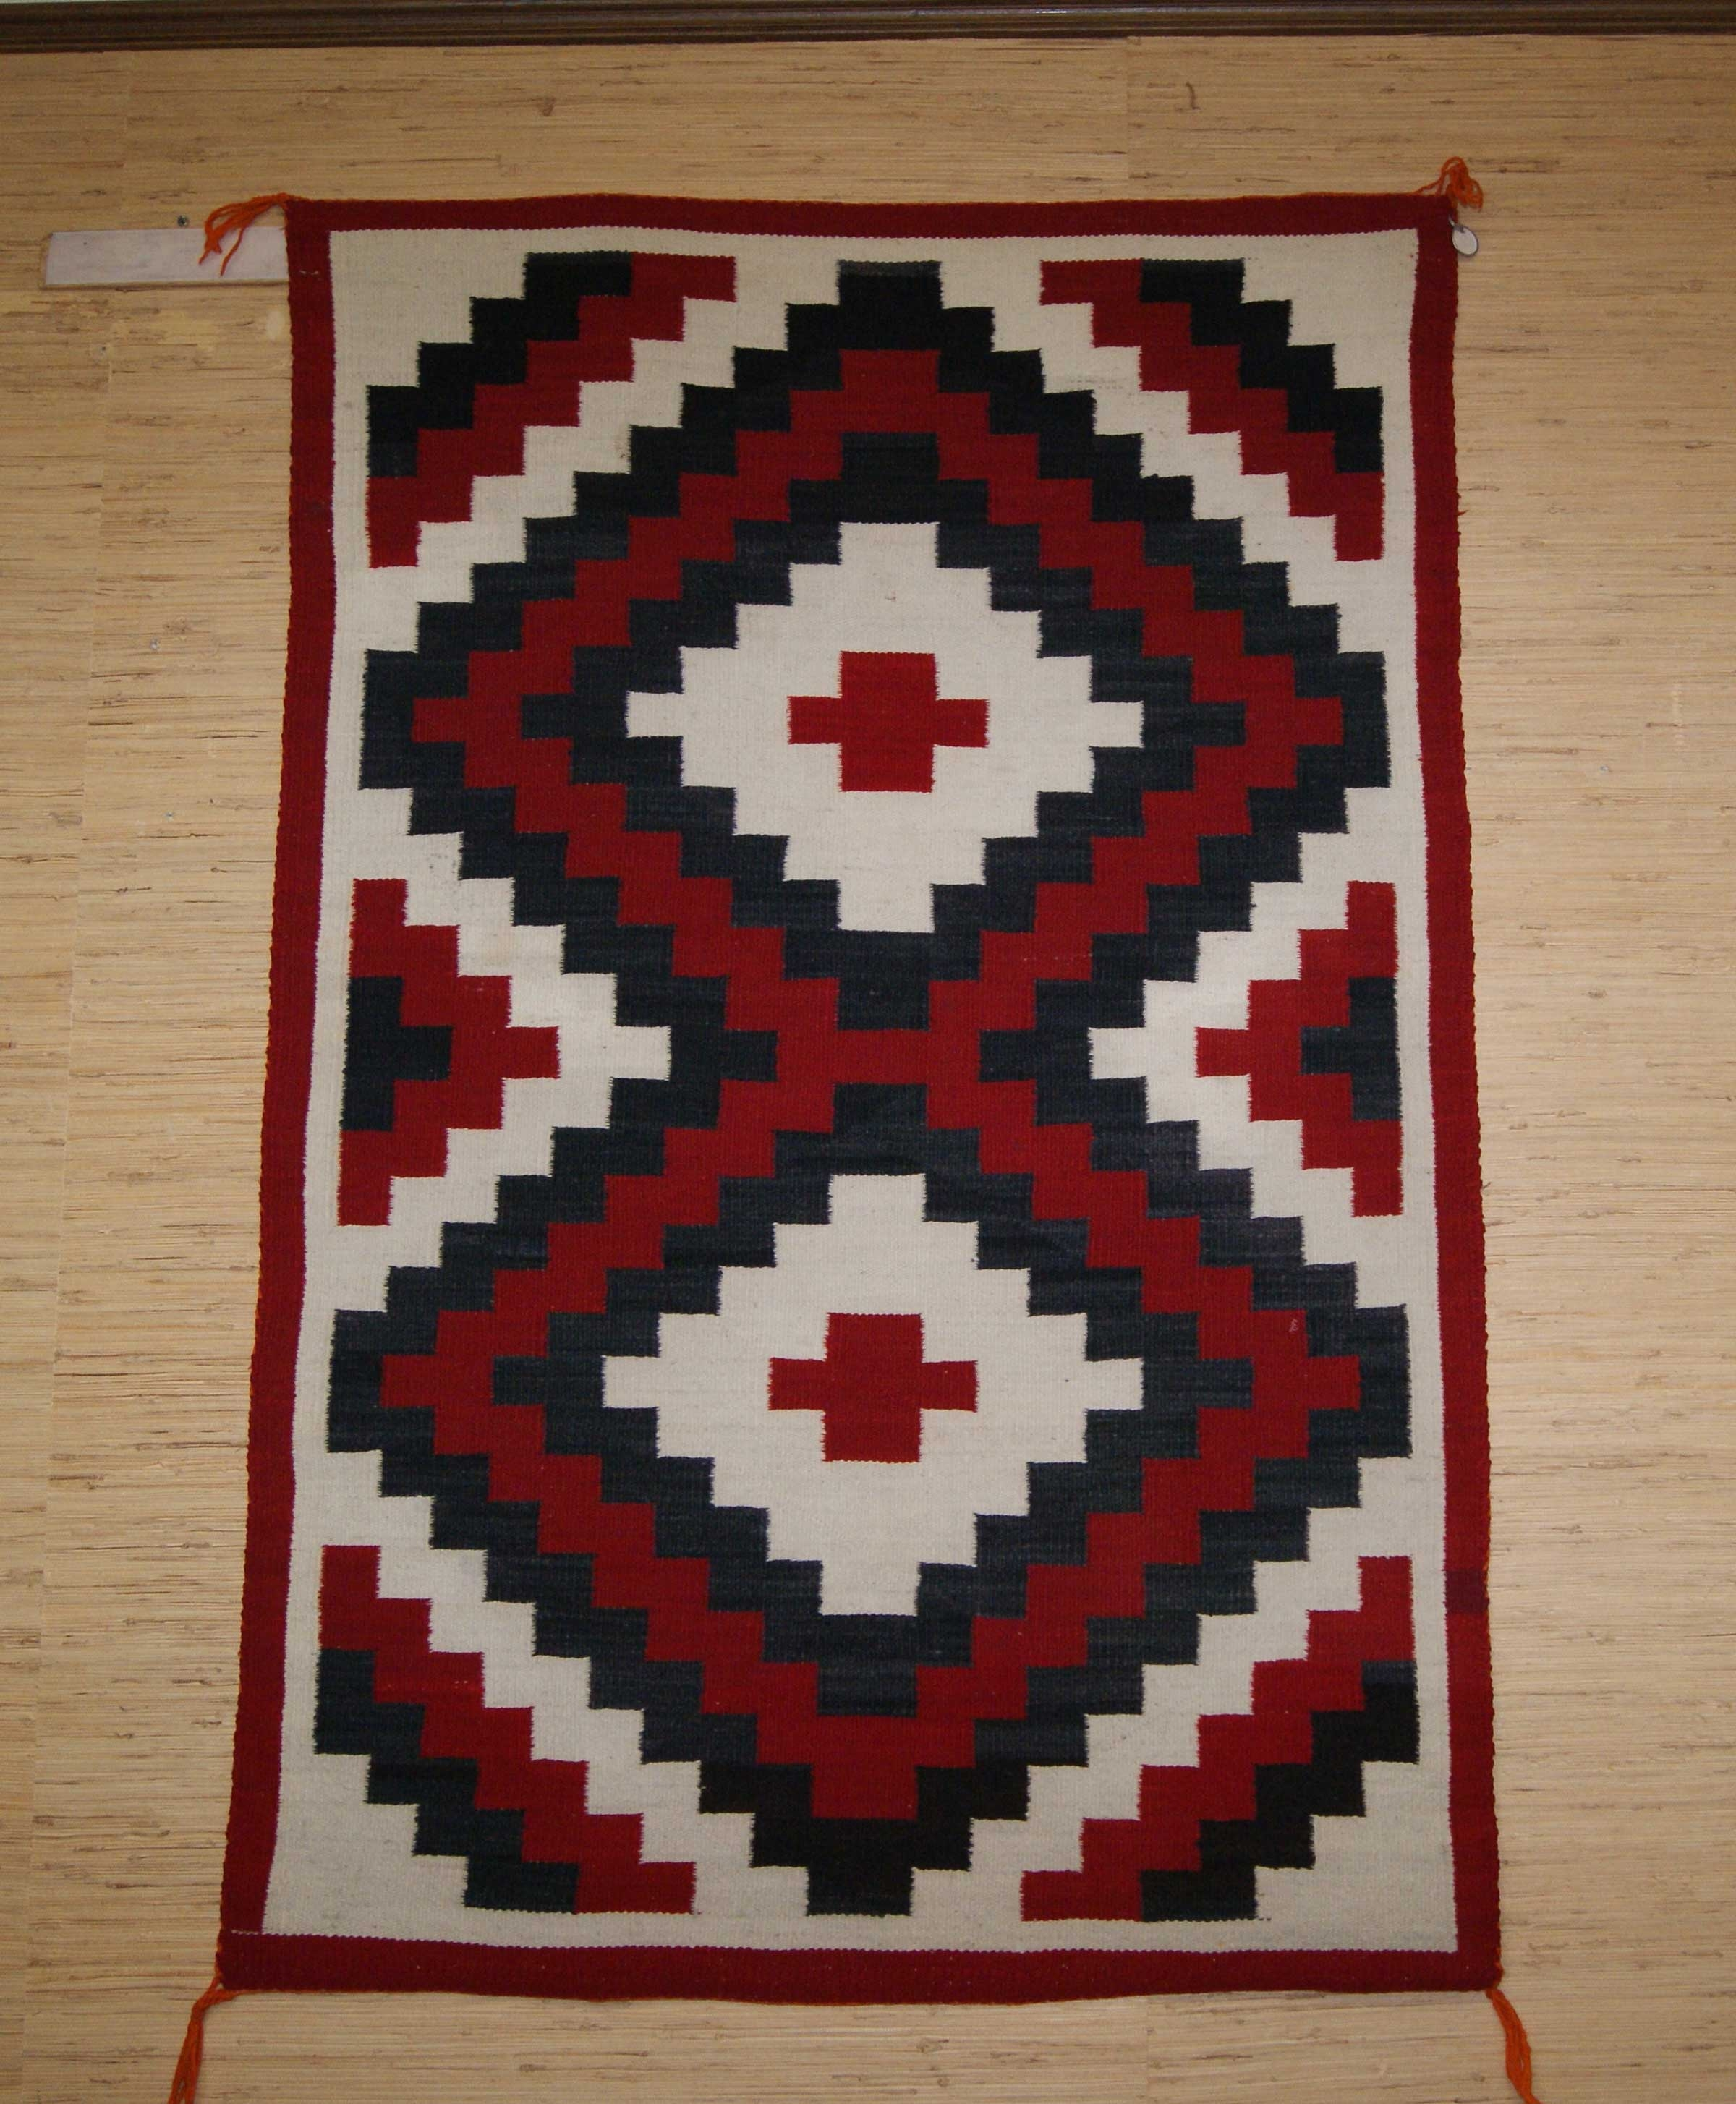 Regional Navajo Rugs History Charleys Navajo Rugs For Sale Inside Small Red Rugs (Photo 11 of 15)